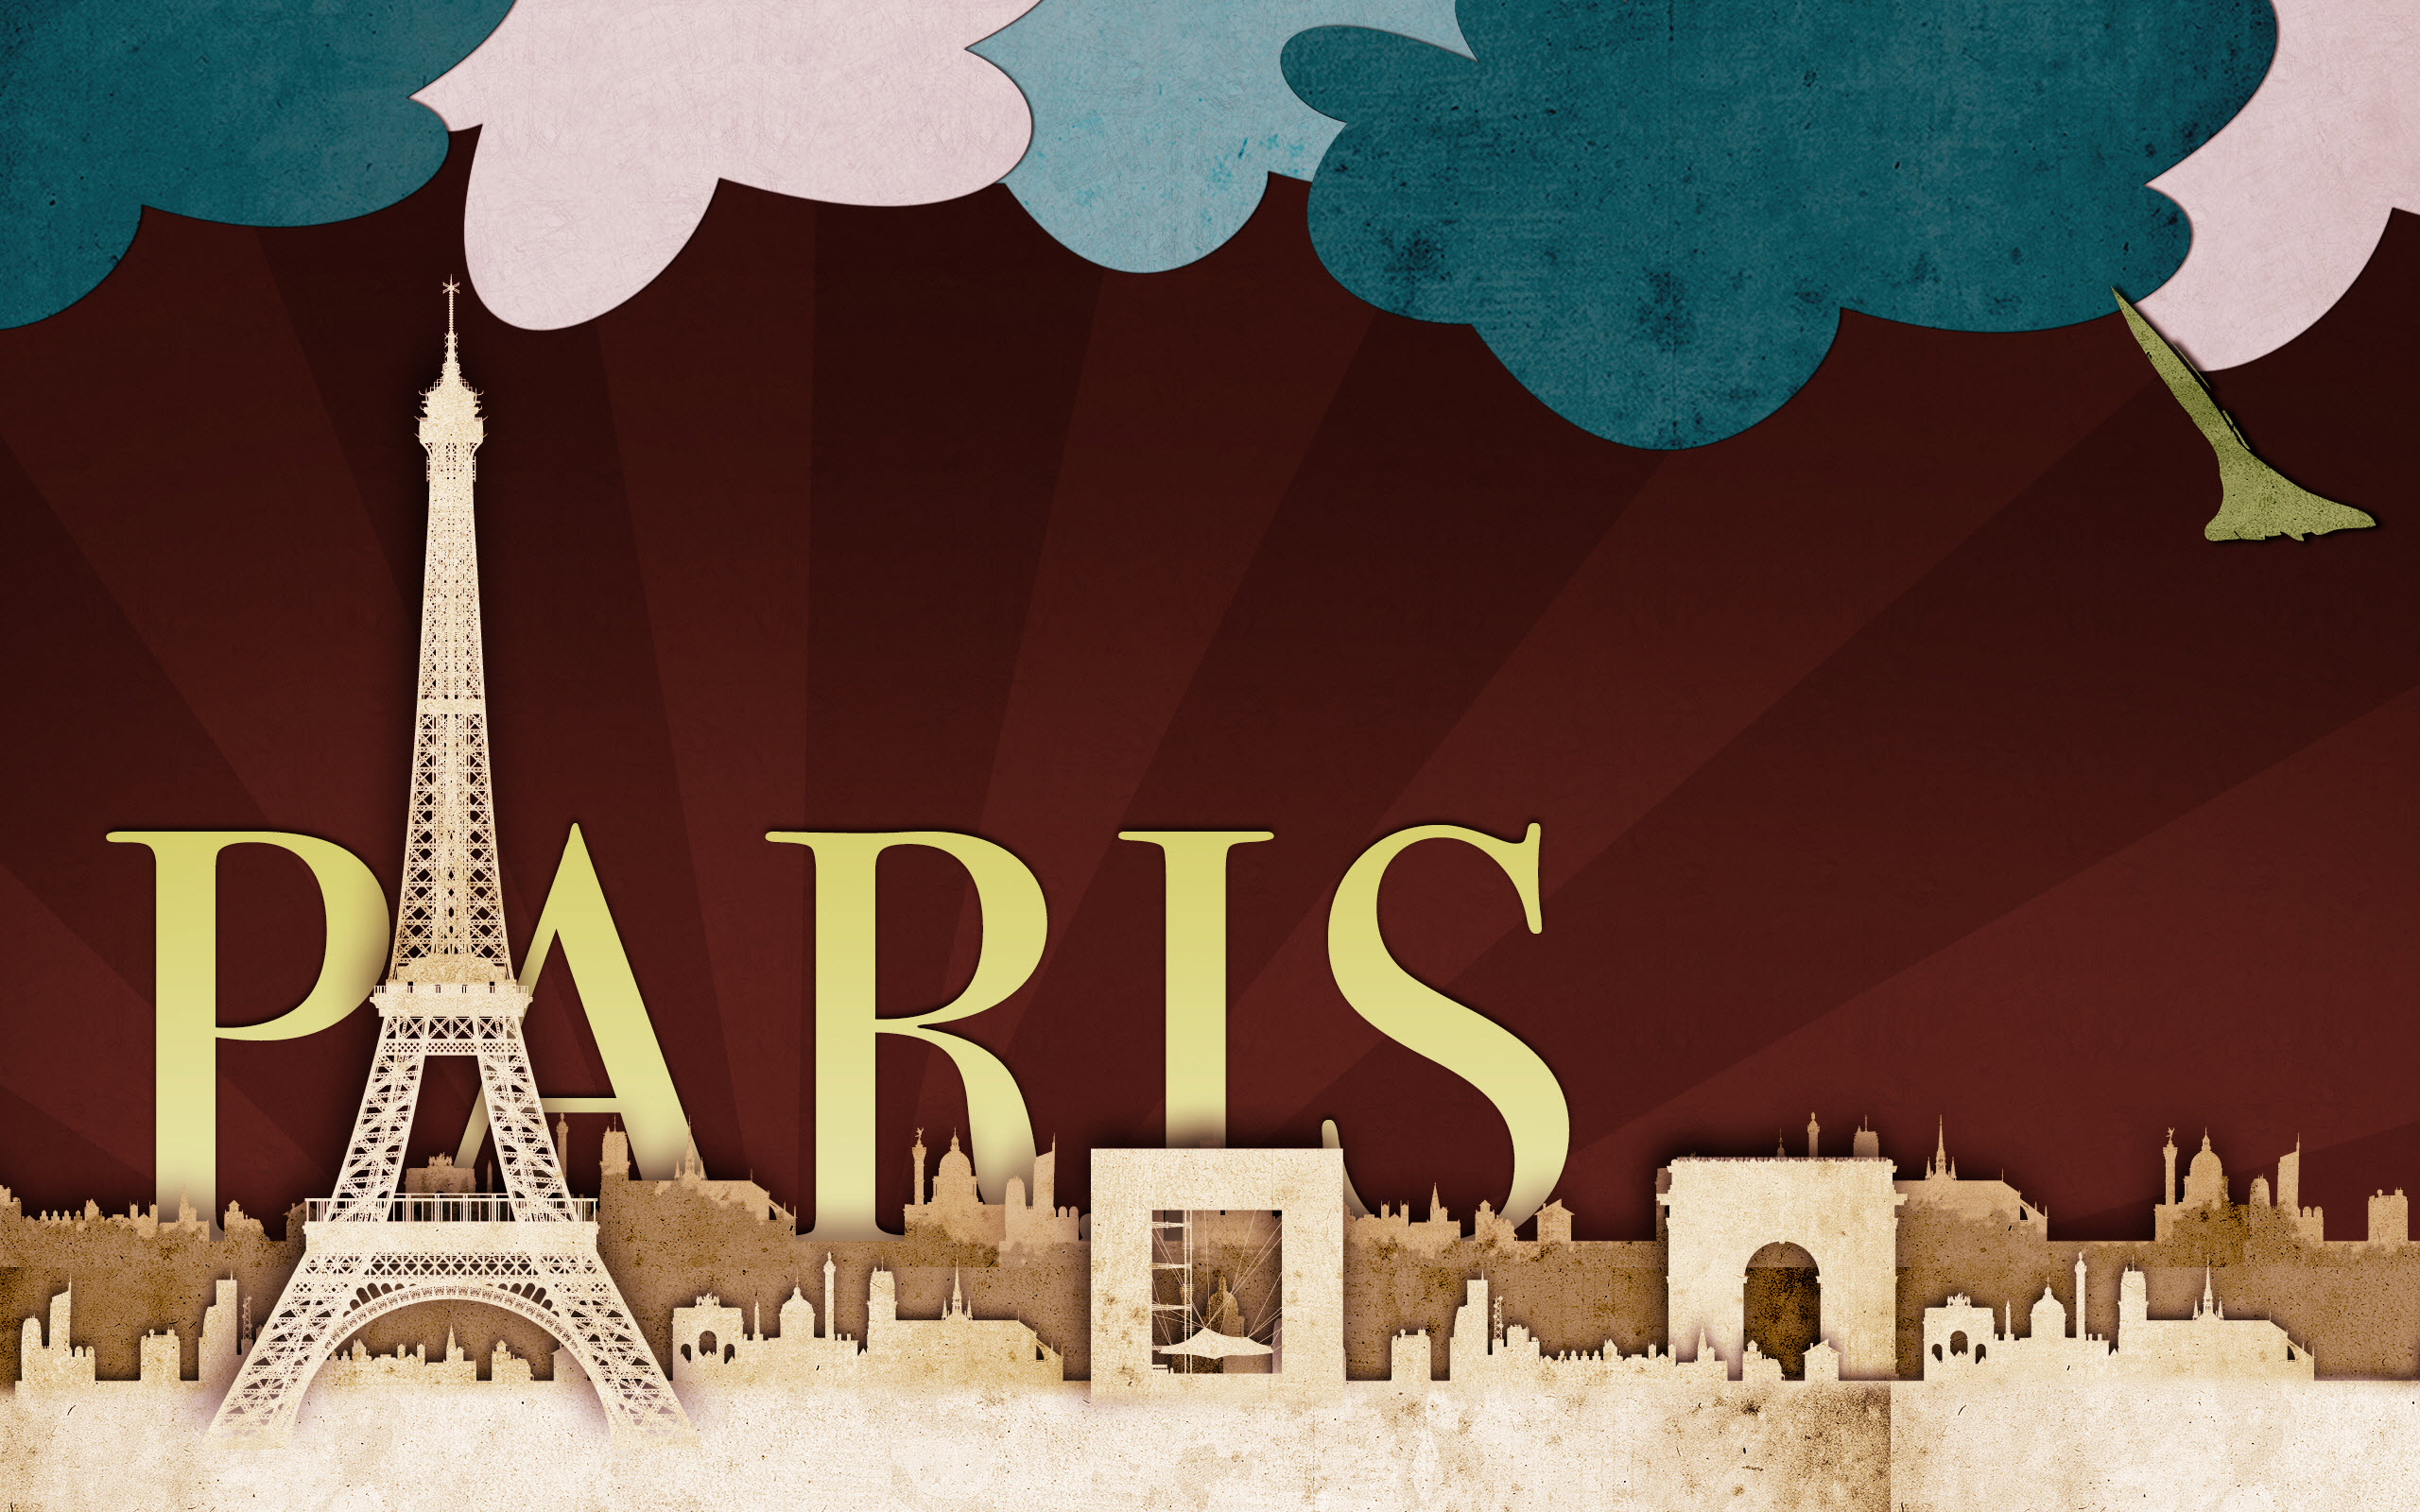 Paris Scrap Art 1315.53 Kb